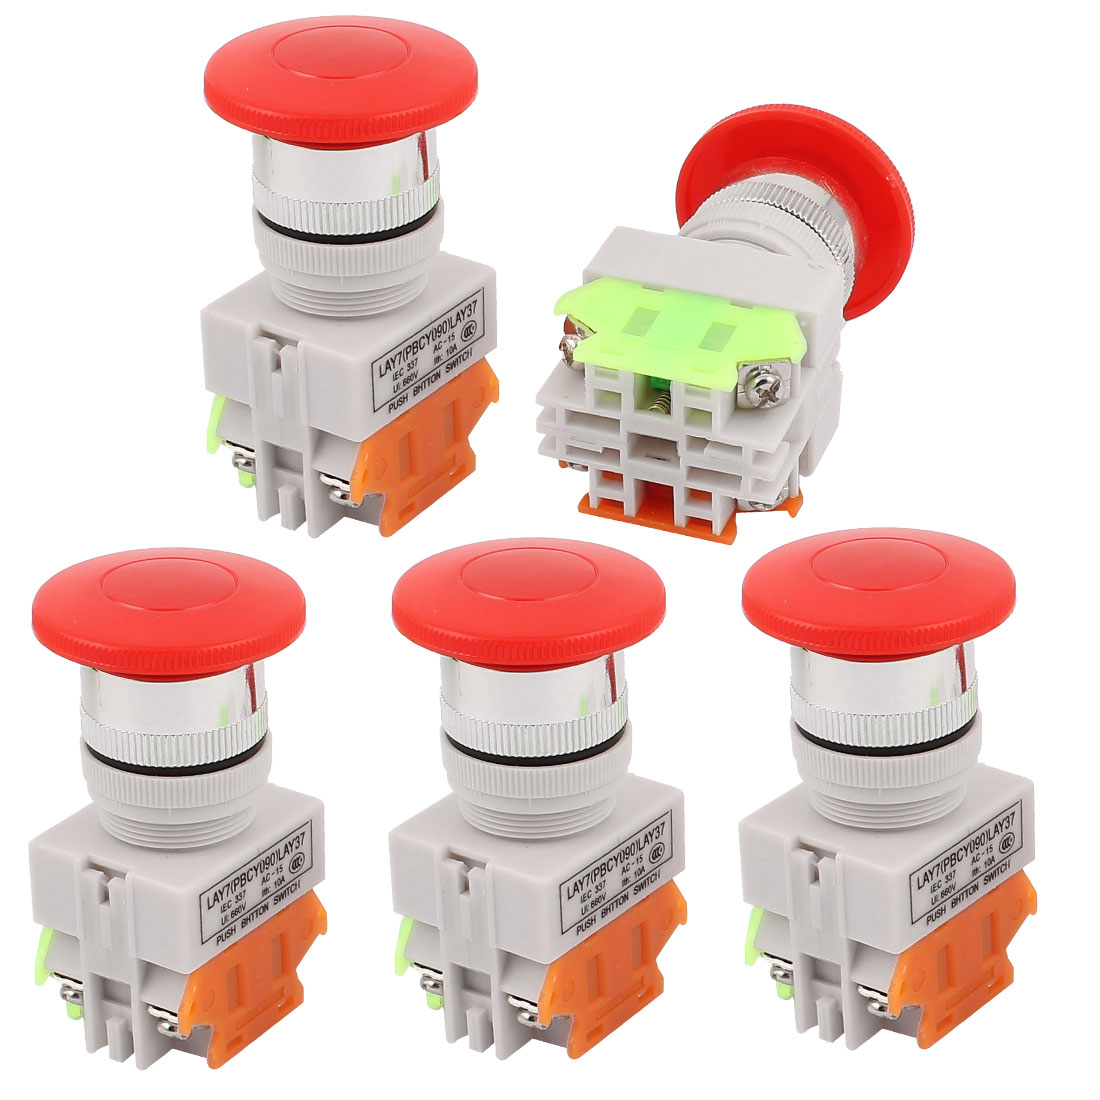 5PCS AC 600V 10A Momentary Emergency Stop Red Mushroom Push Switch